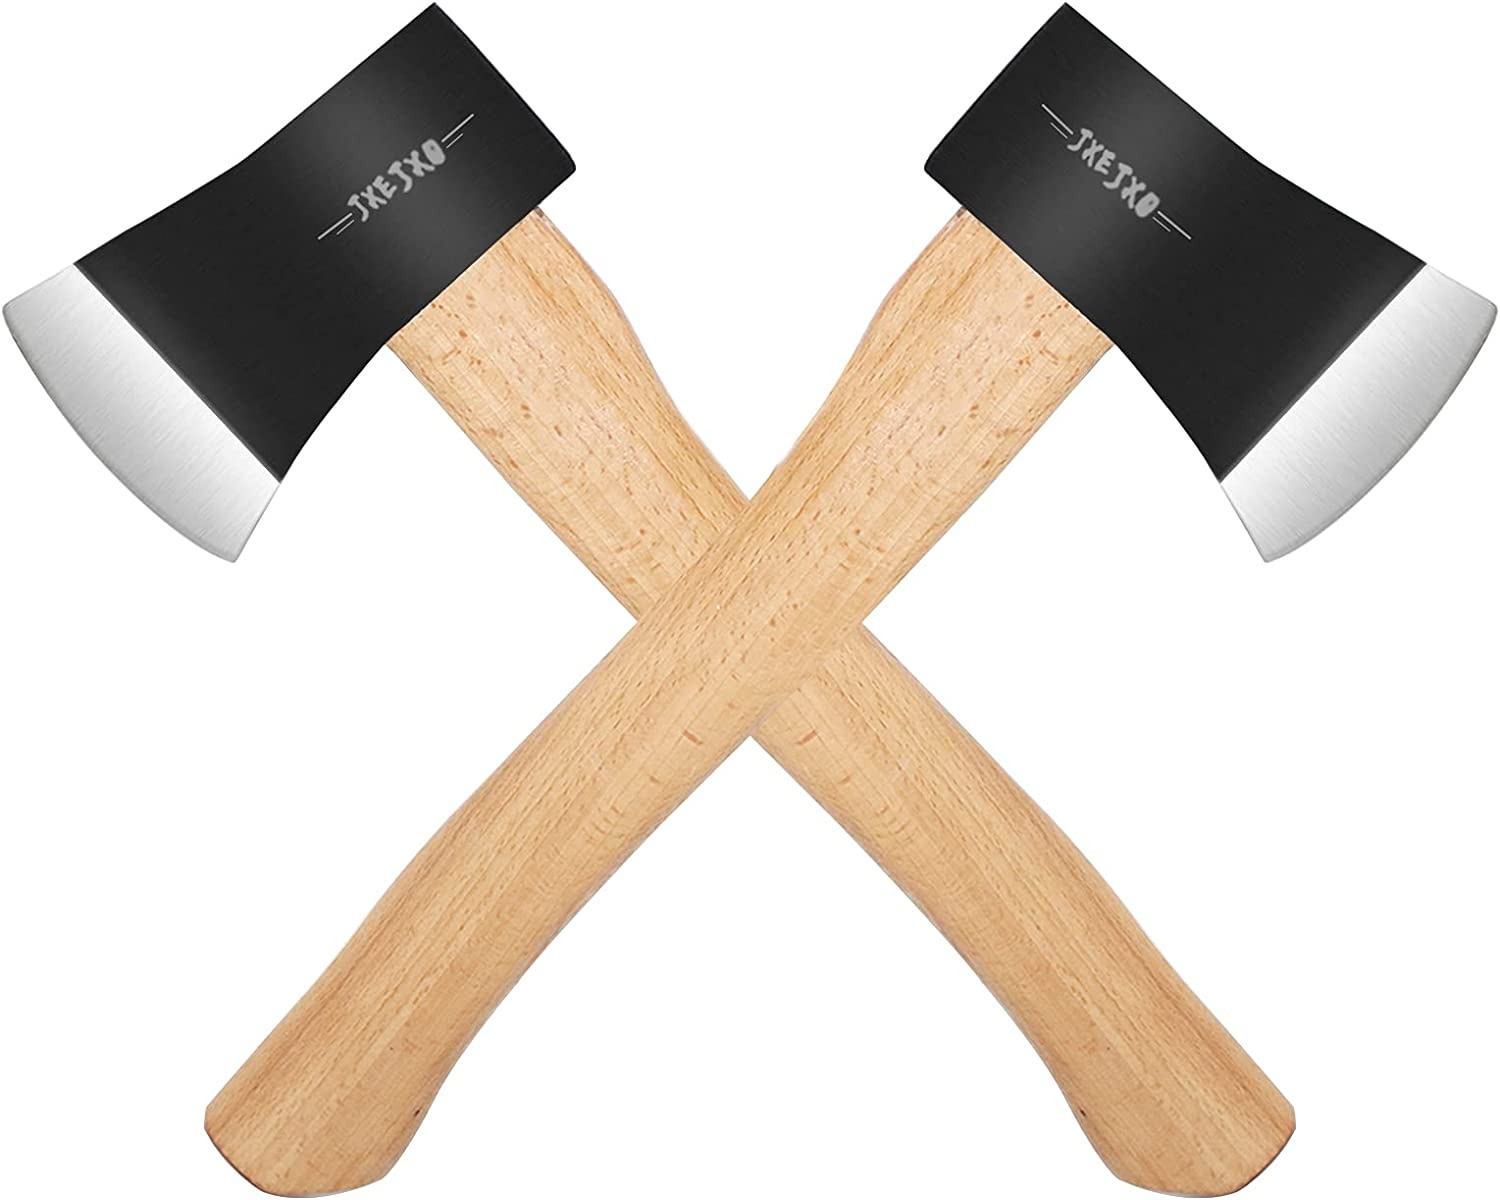 JXE JXO Chopping Axe Ranking TOP3 2-Pack,Camping - Stee Hatchet Max 74% OFF 1055 Carbon